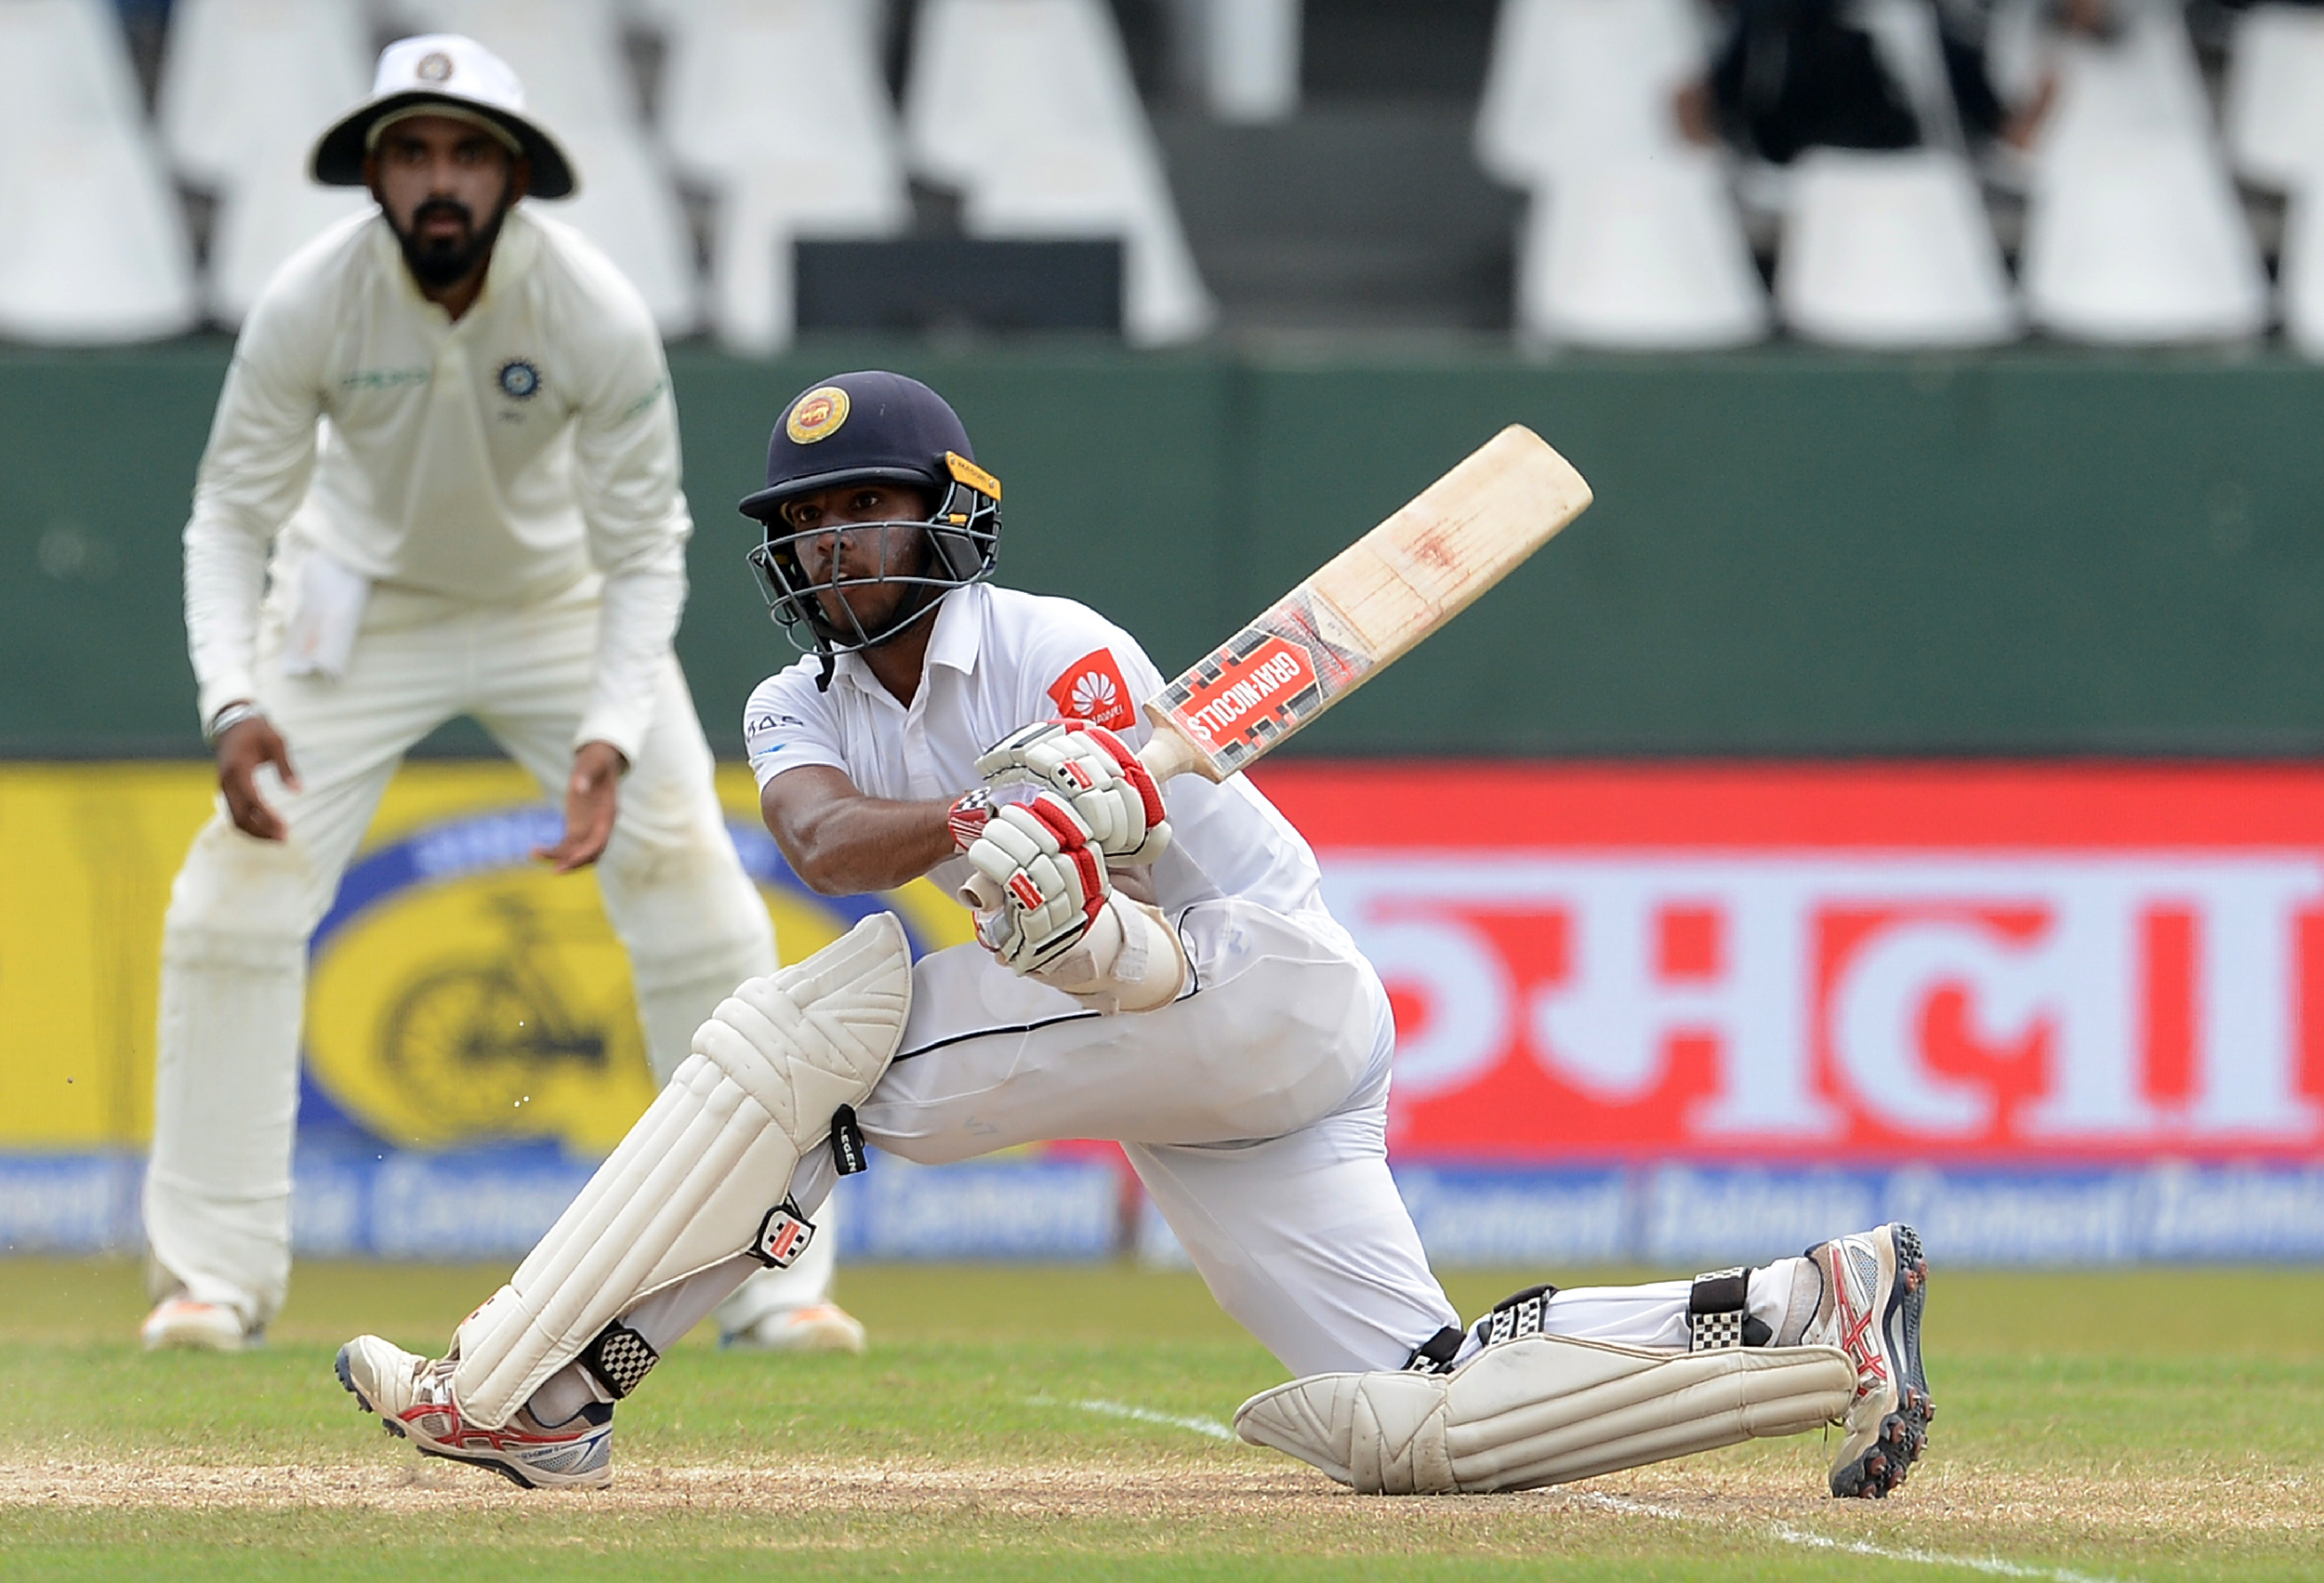 Kusal Mendis sweeps his way to a counter-attacking century. (Image credit: Lakruwan Wanniarachchi/AFP)